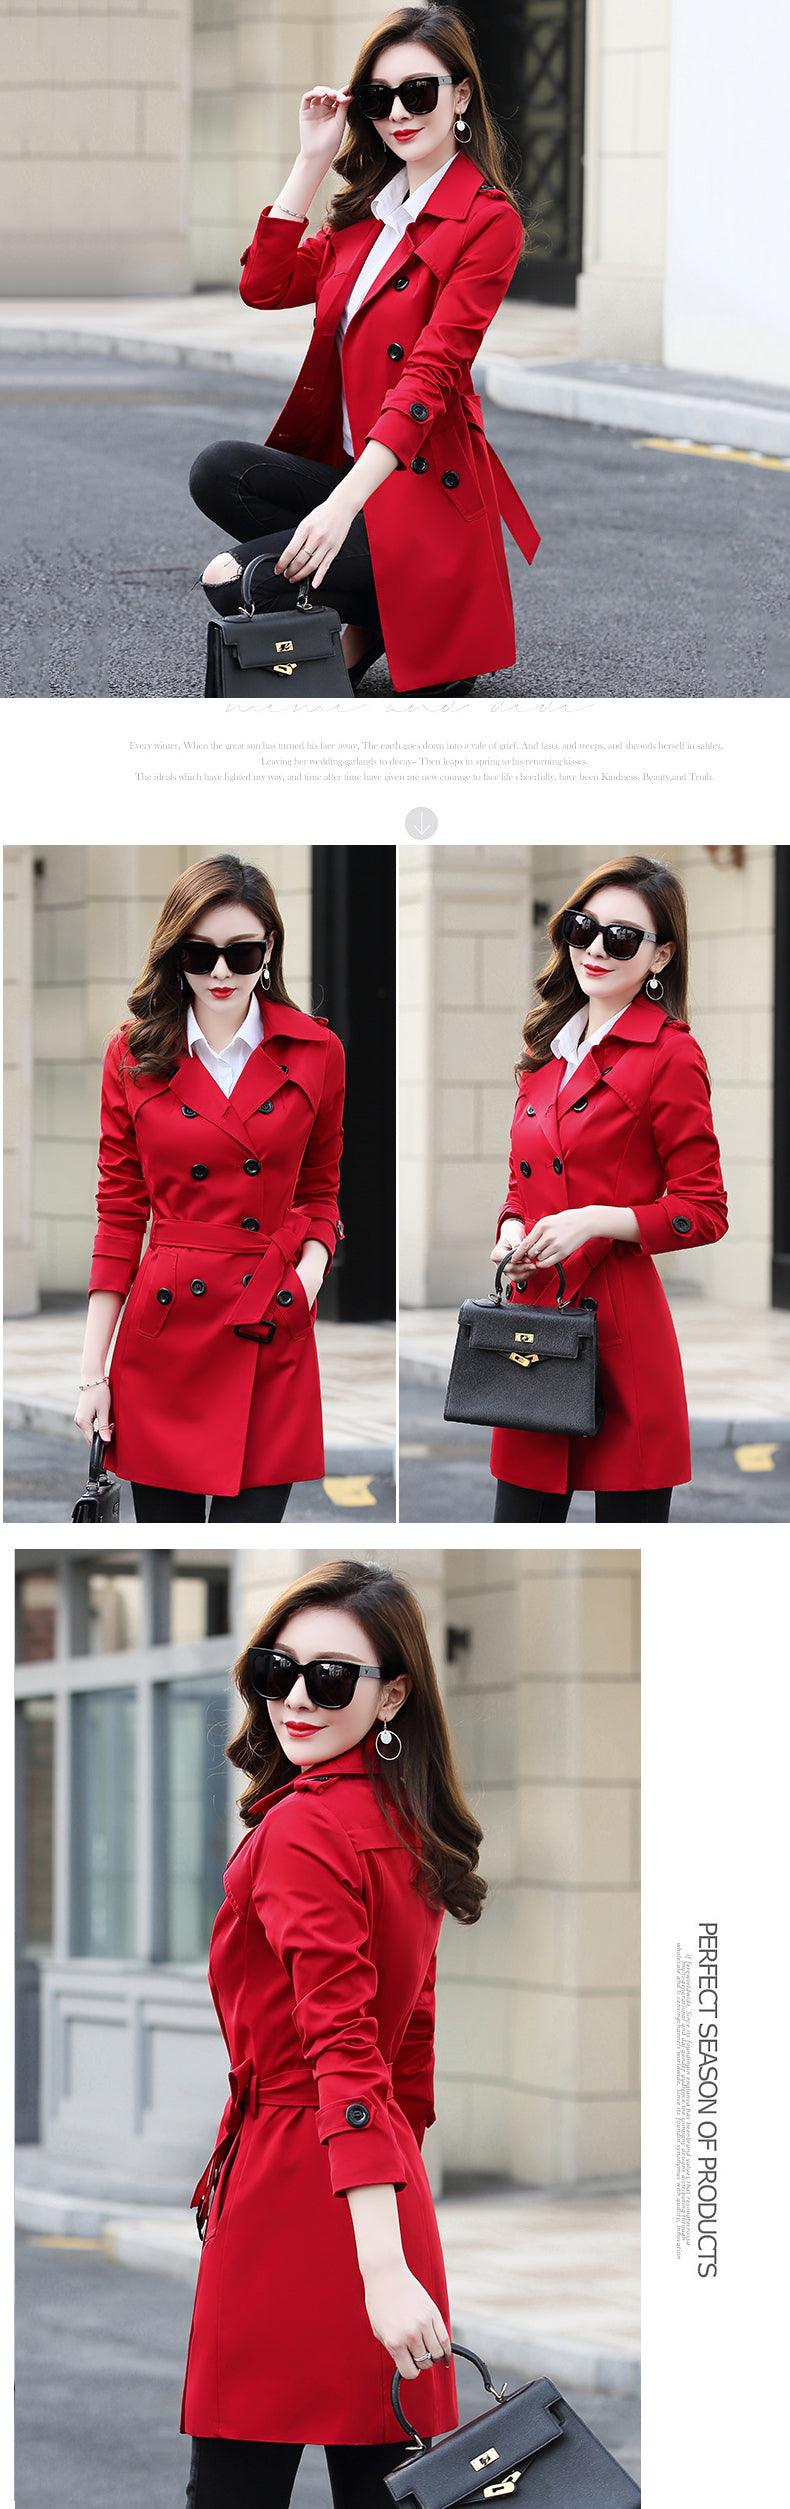 2019 Autumn New Double Breasted Trench Coat Female High Quality Business Outerwear Creationsg